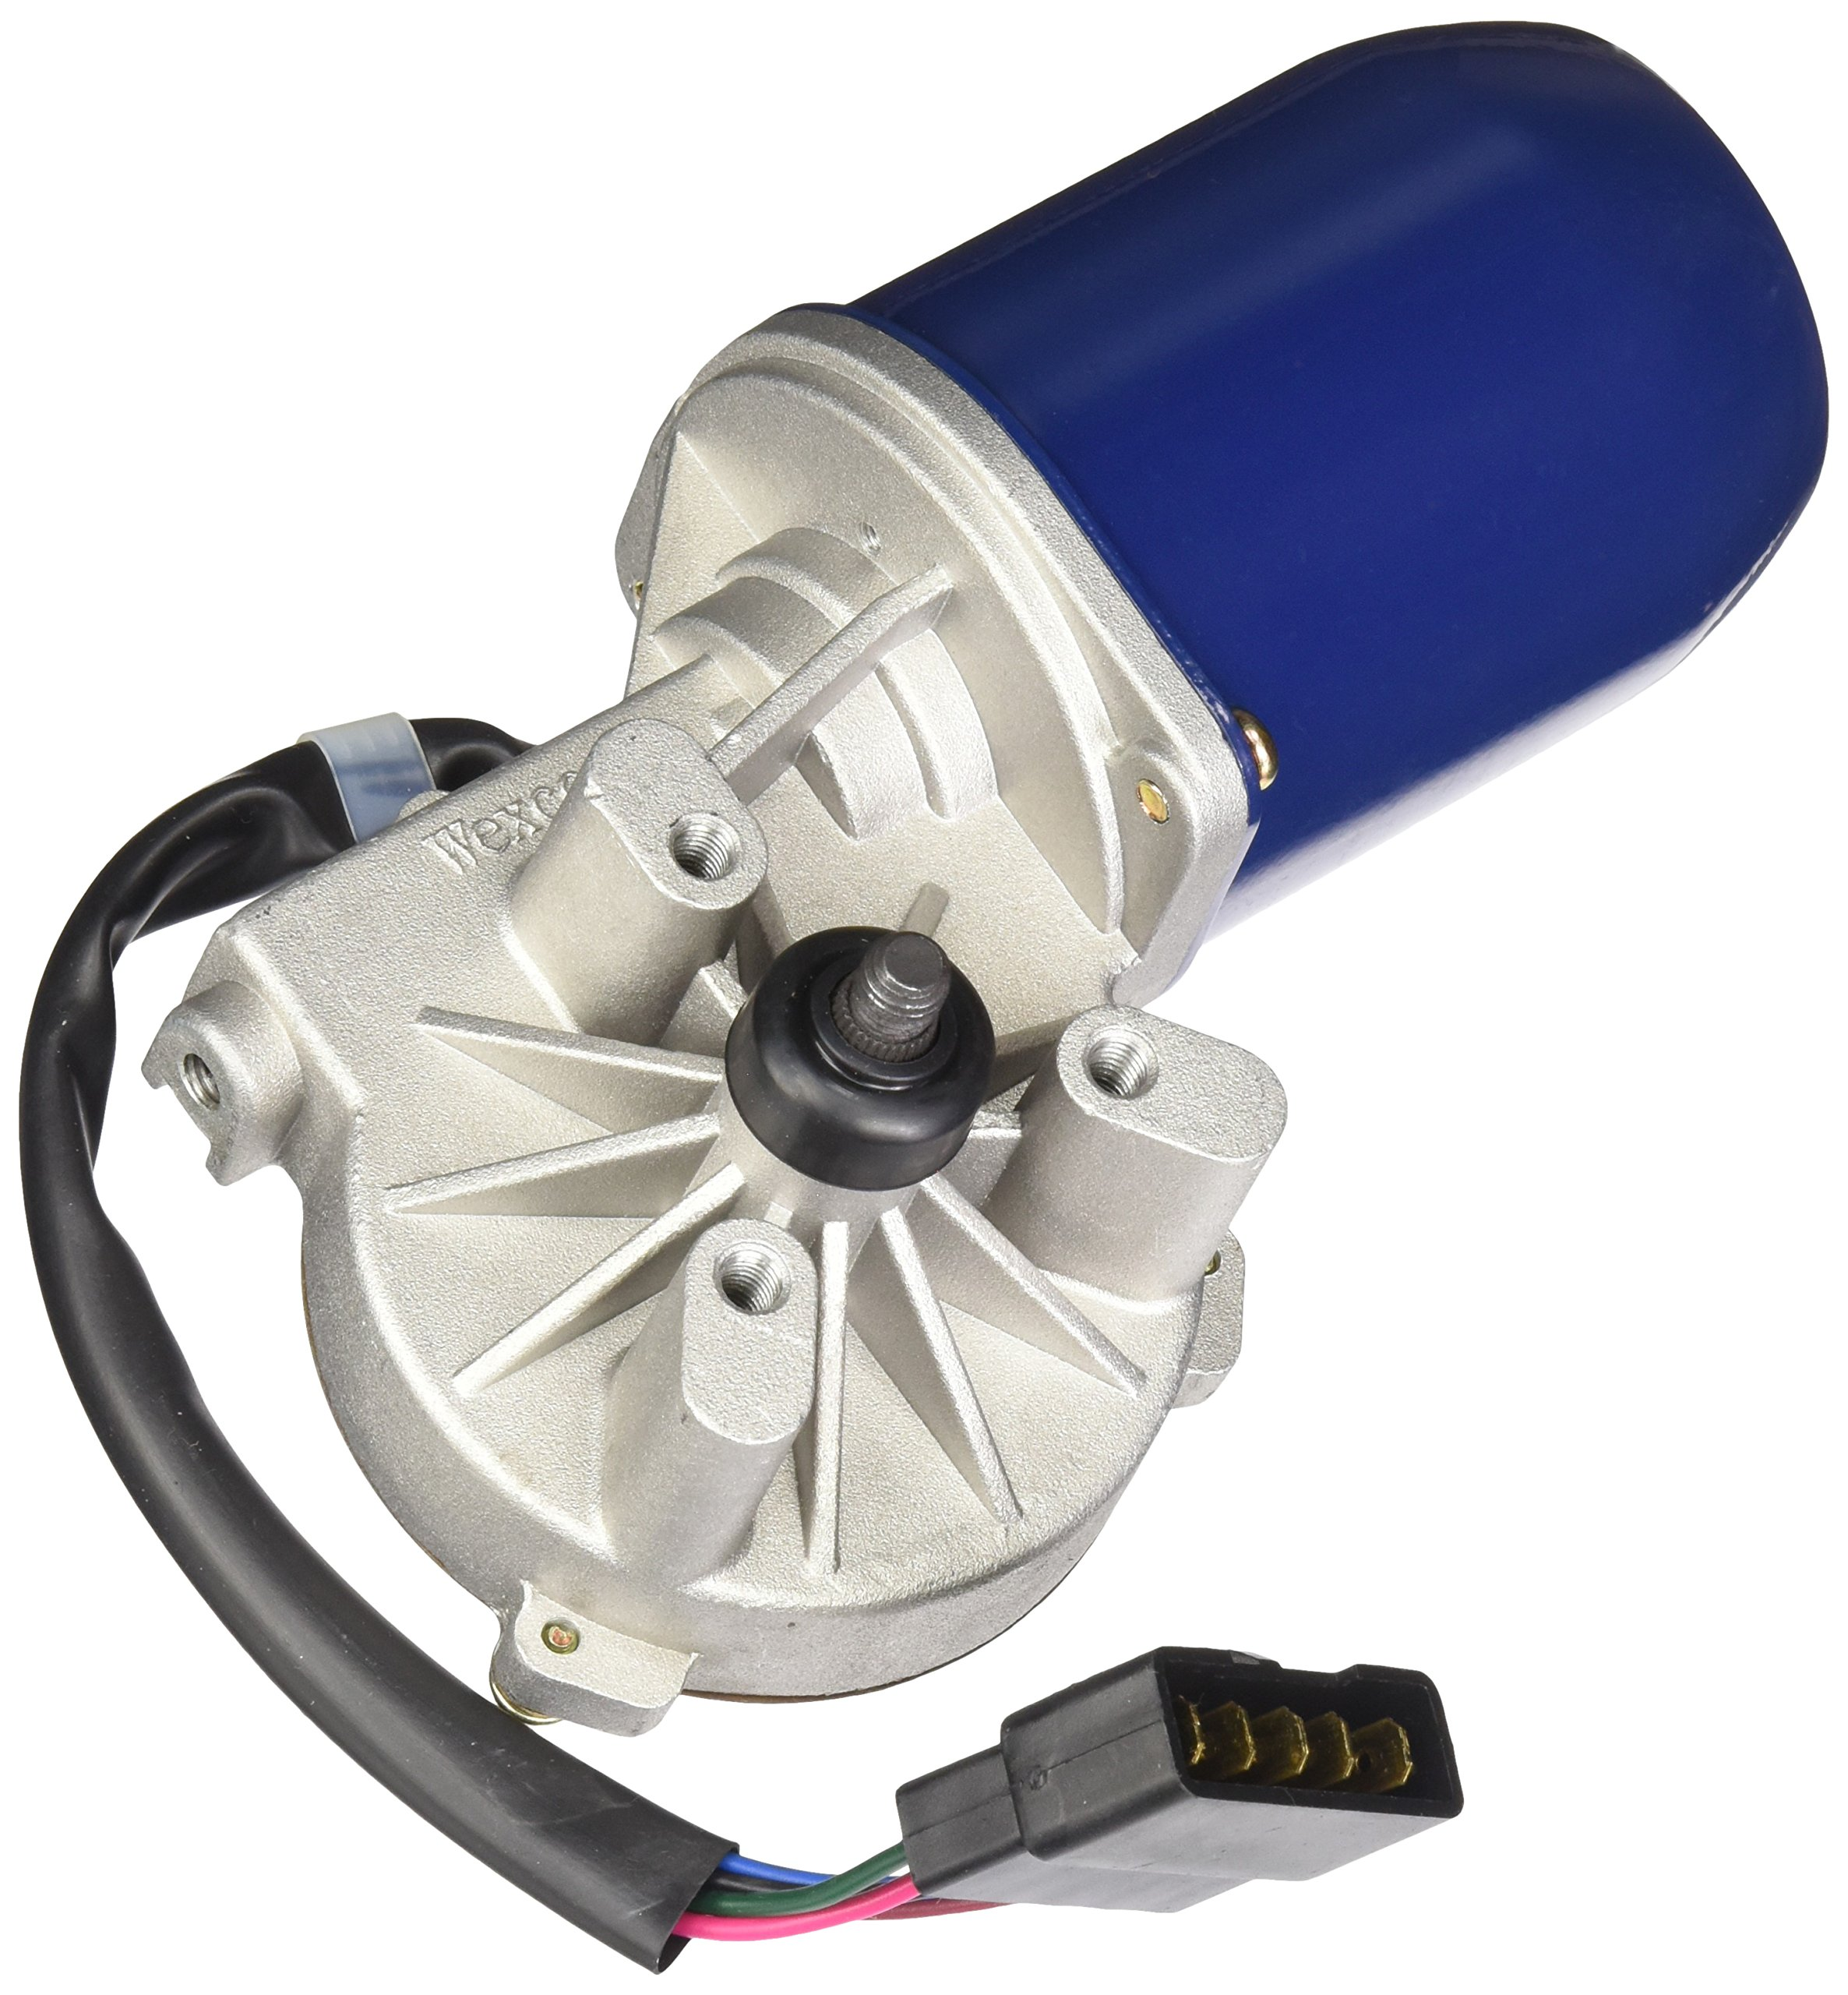 Wexco Wiper Motor, H132, 24V, 32Nm, Coast-to-Park Wiper Motor by AutoTex